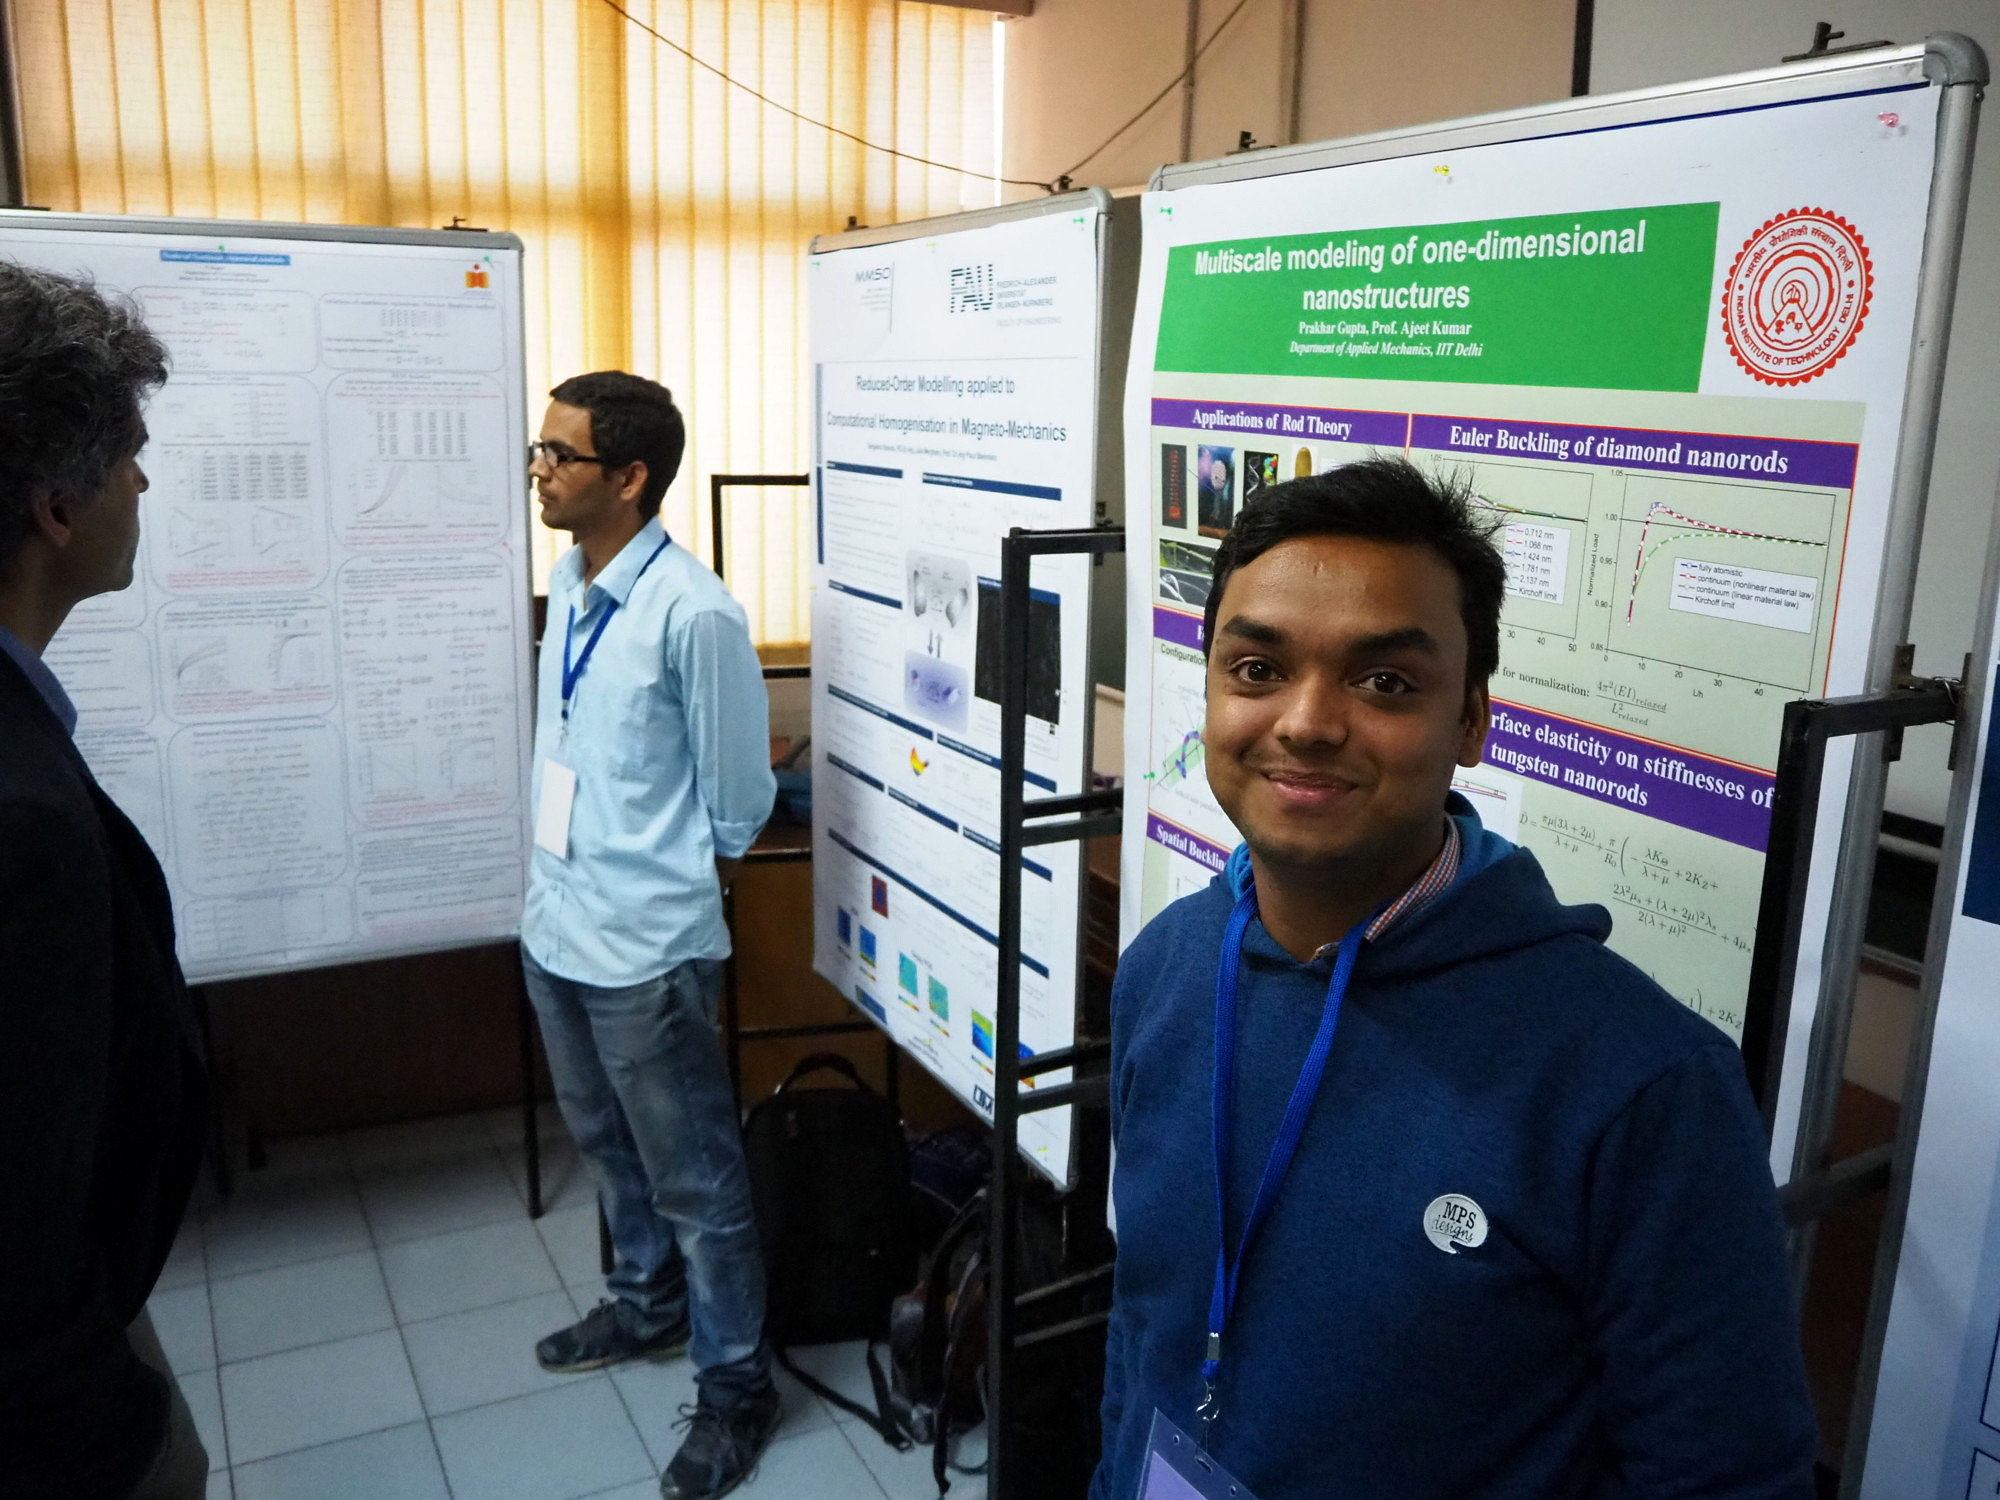 """Dr. Prakhar Gupta standing in front of his poster about """"Multiscale modeling of one-dimensional nanostructures""""."""